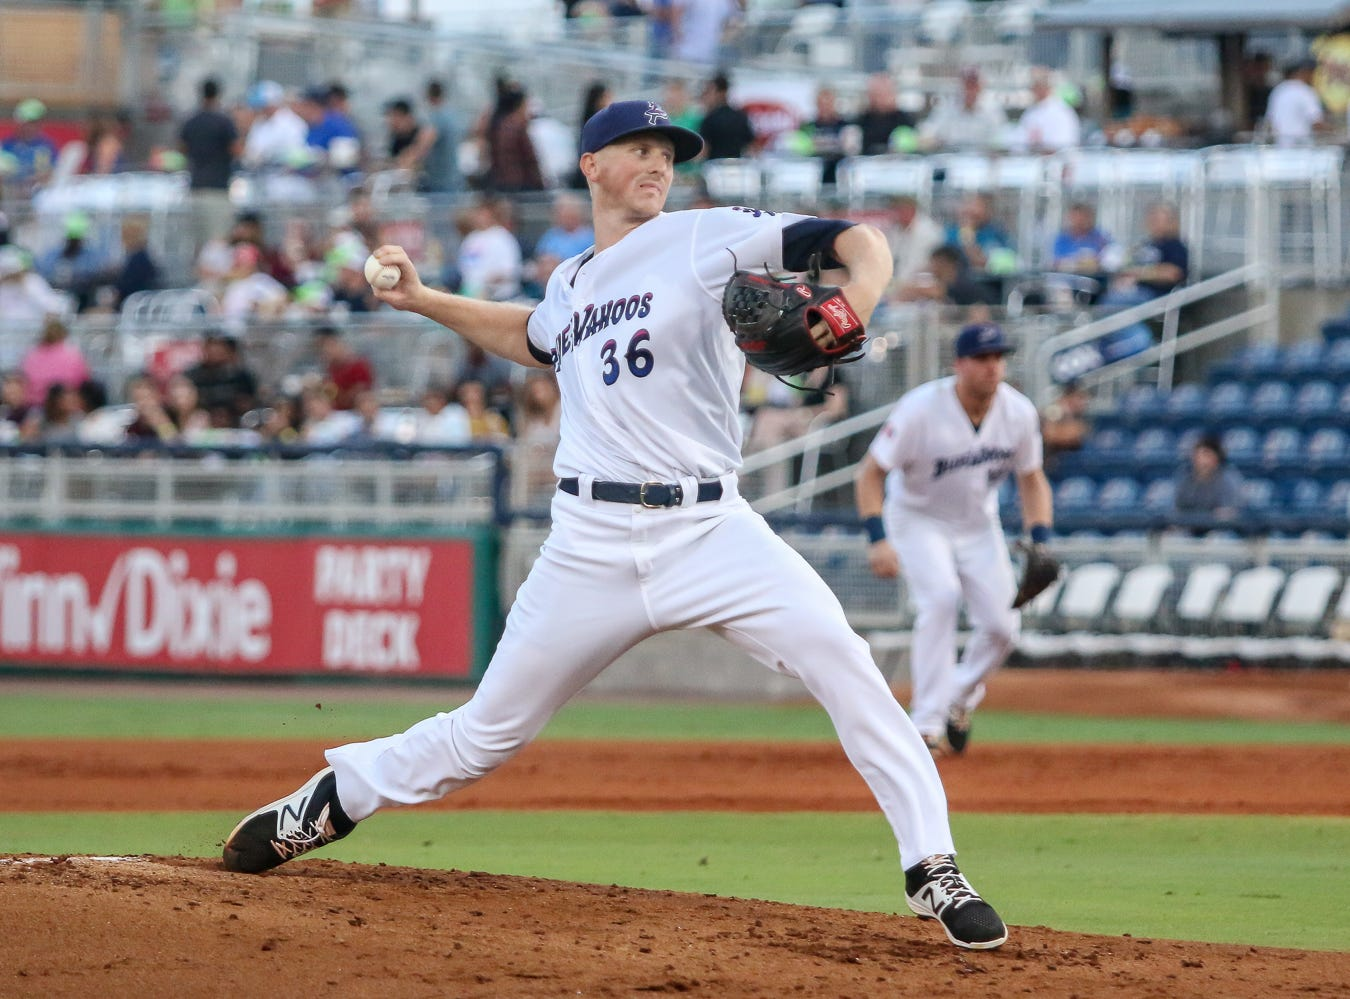 Pensacola's Wyatt Strahan (36) pitches against Mobile during the Blue Wahoos' last home game of the regular season on Tuesday, August 28, 2018.